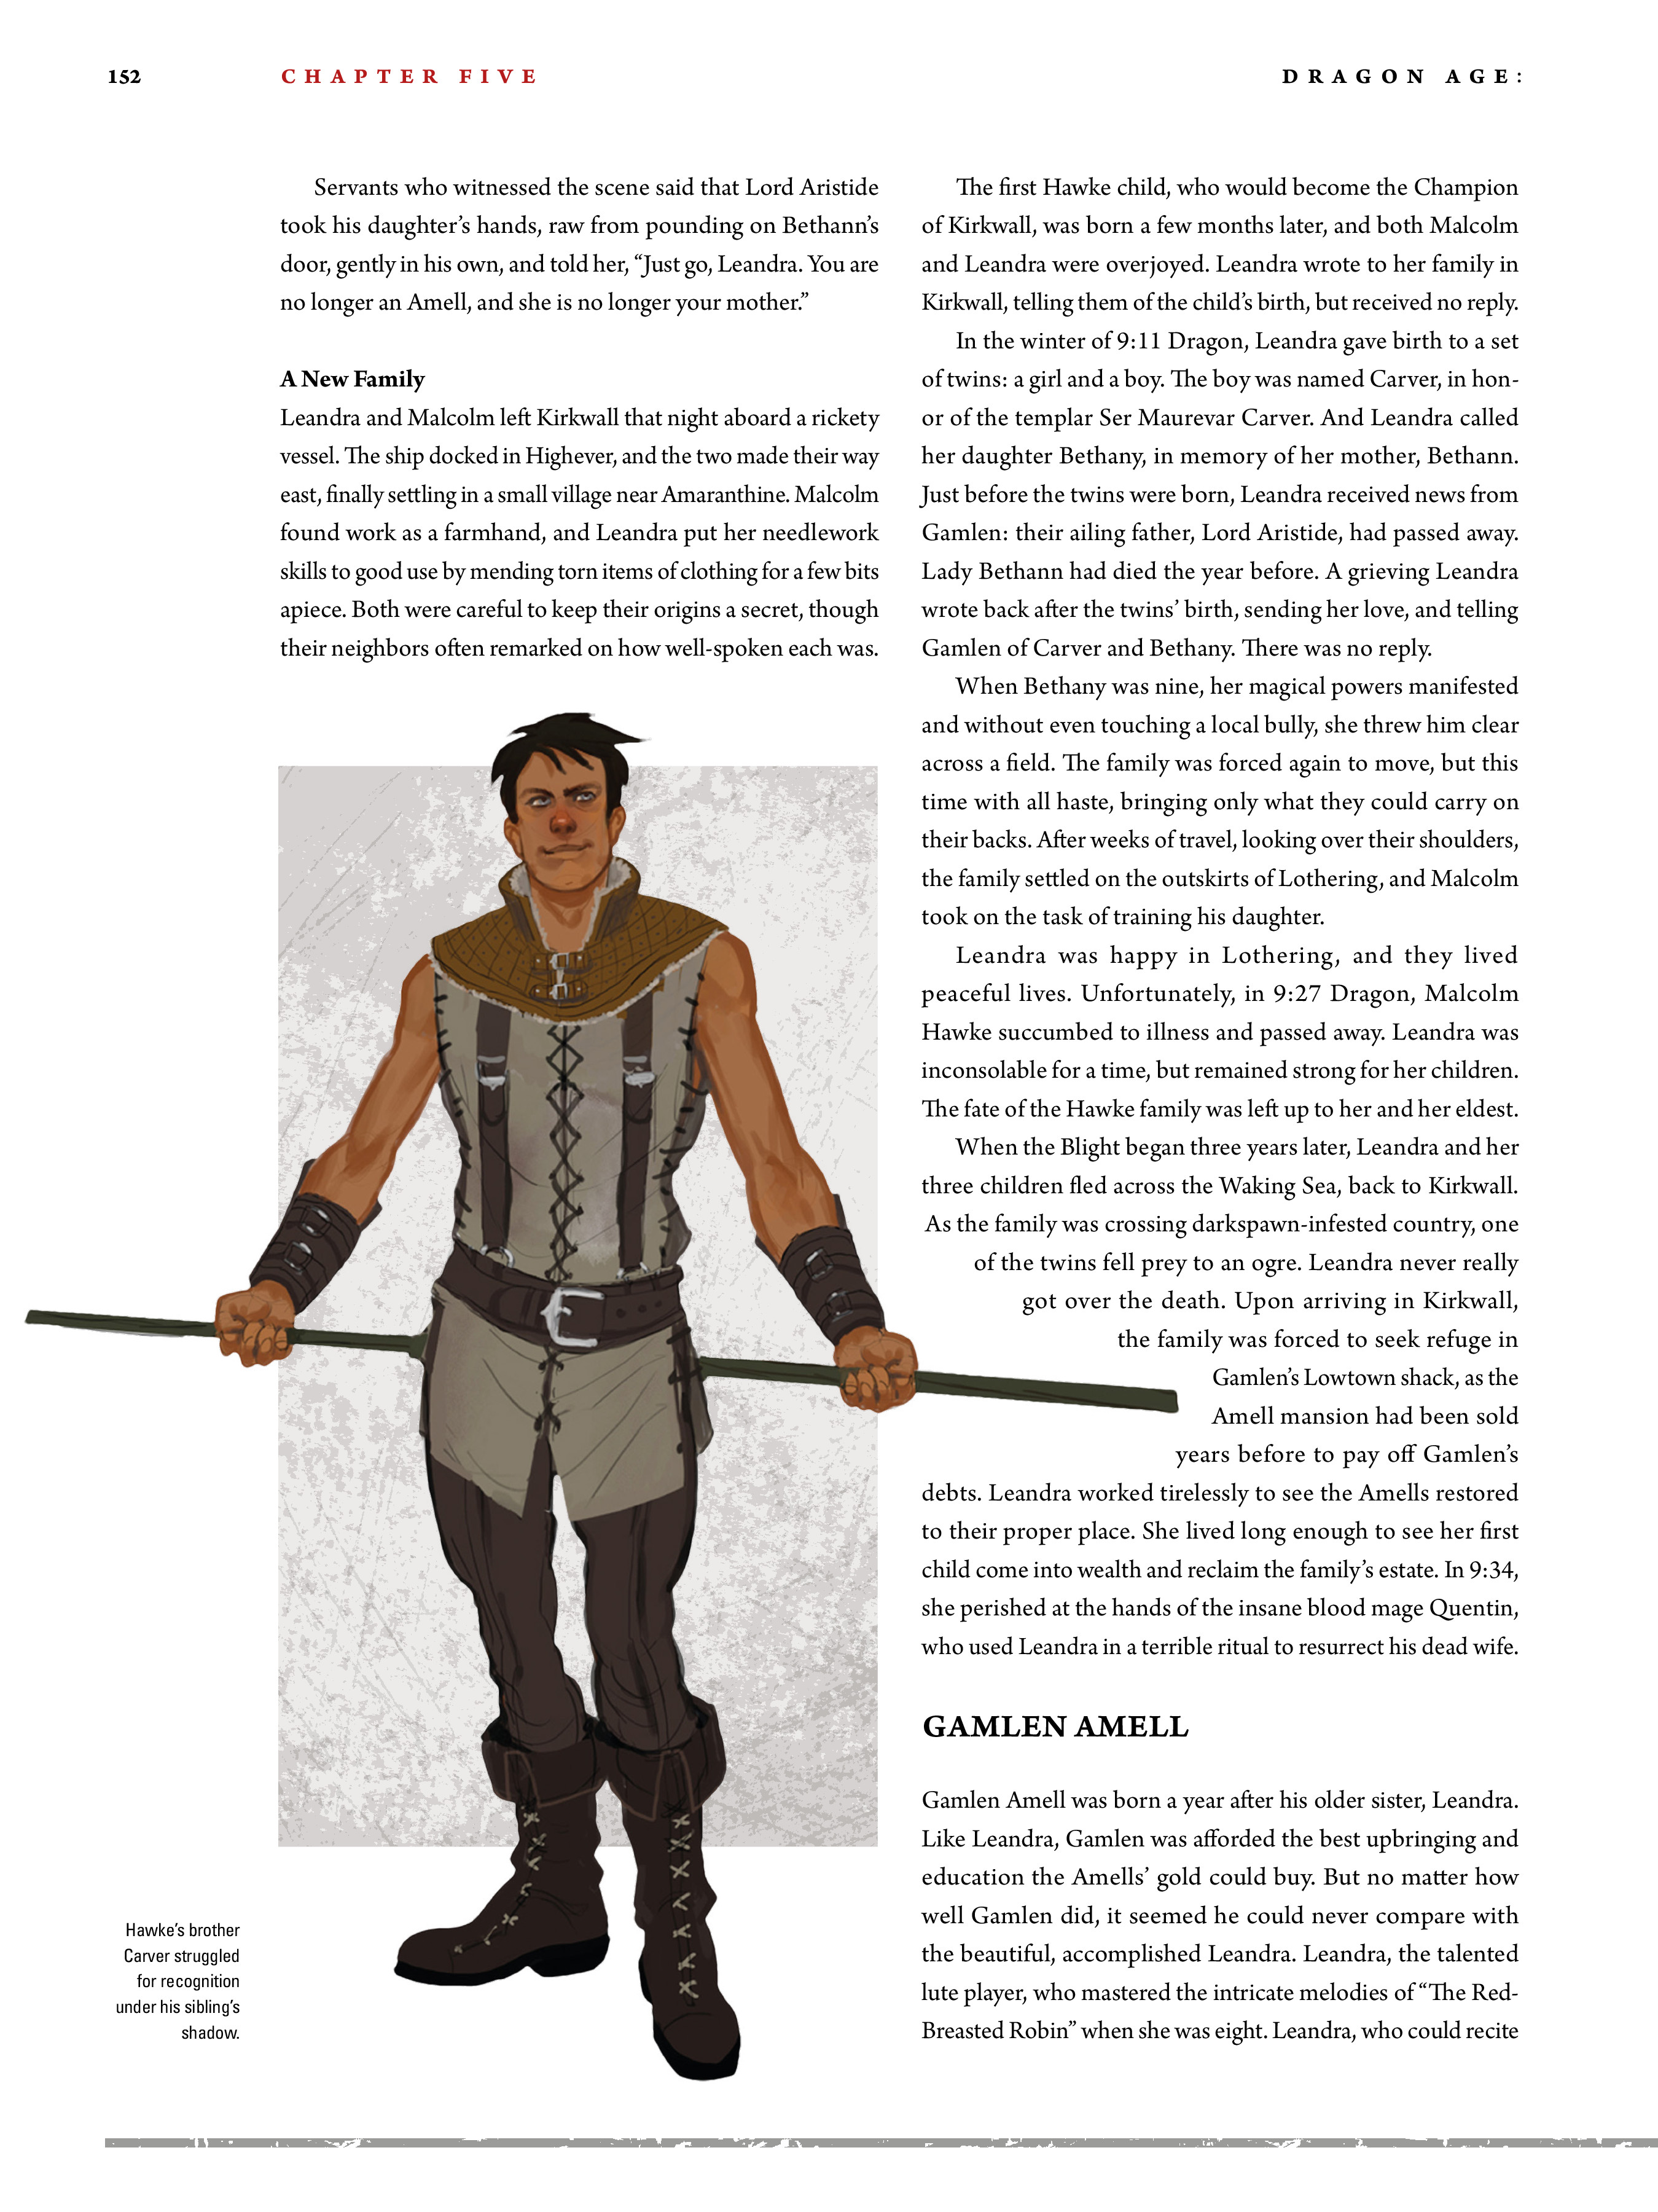 Read online Dragon Age: The World of Thedas comic -  Issue # TPB 2 - 148